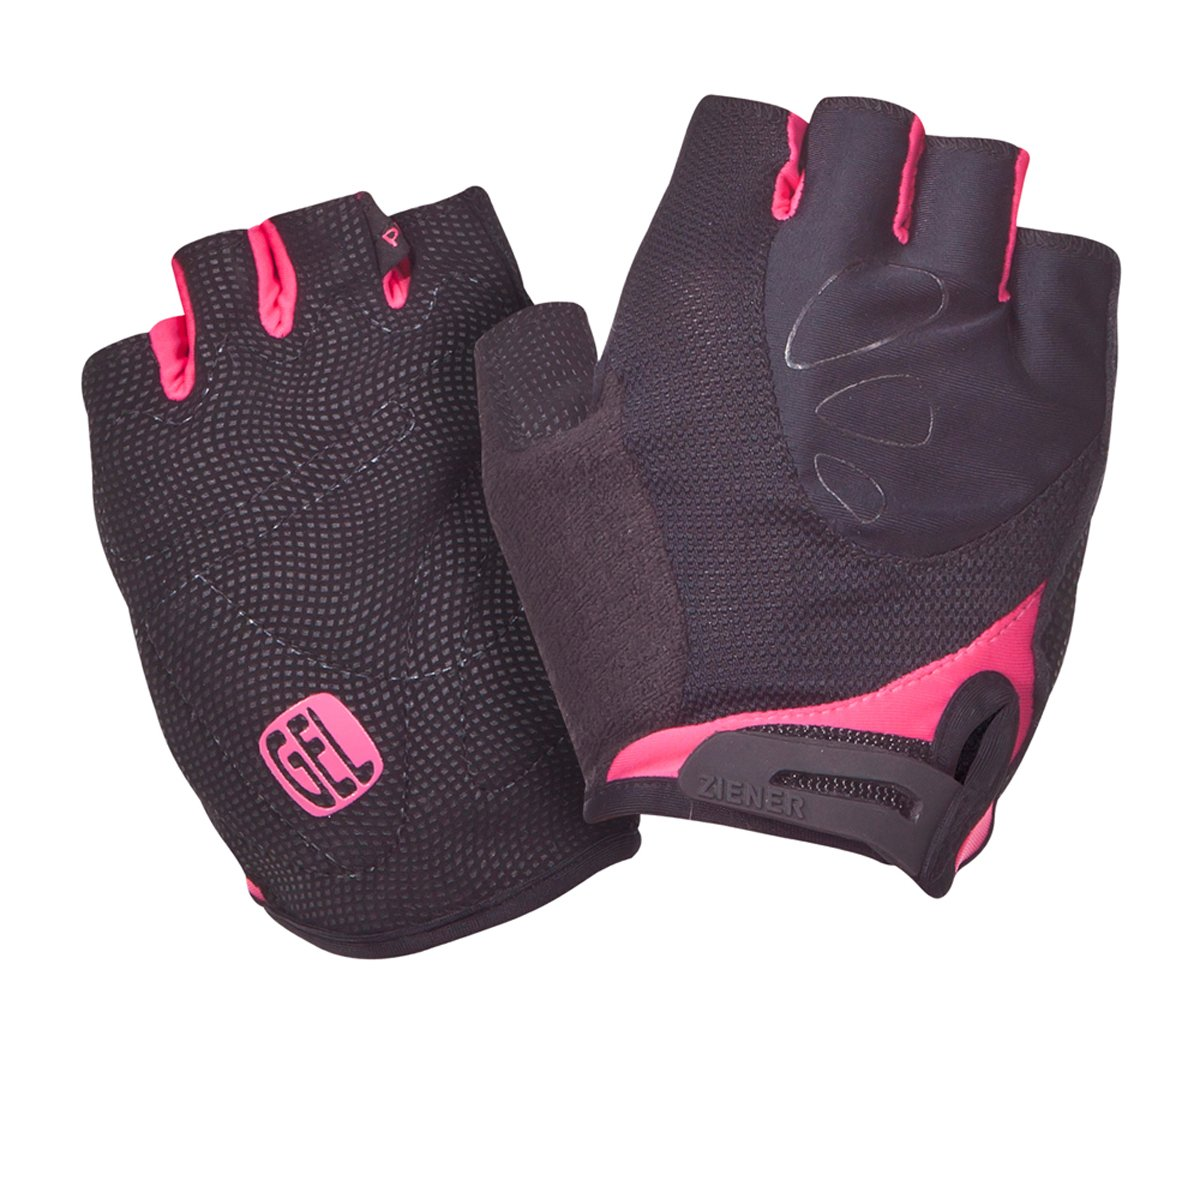 Motorcycle gloves to prevent numbness - Ziener Capela Pink Motorcycle Gloves Cycling Gloves Women S Gloves Amazon Co Uk Sports Outdoors